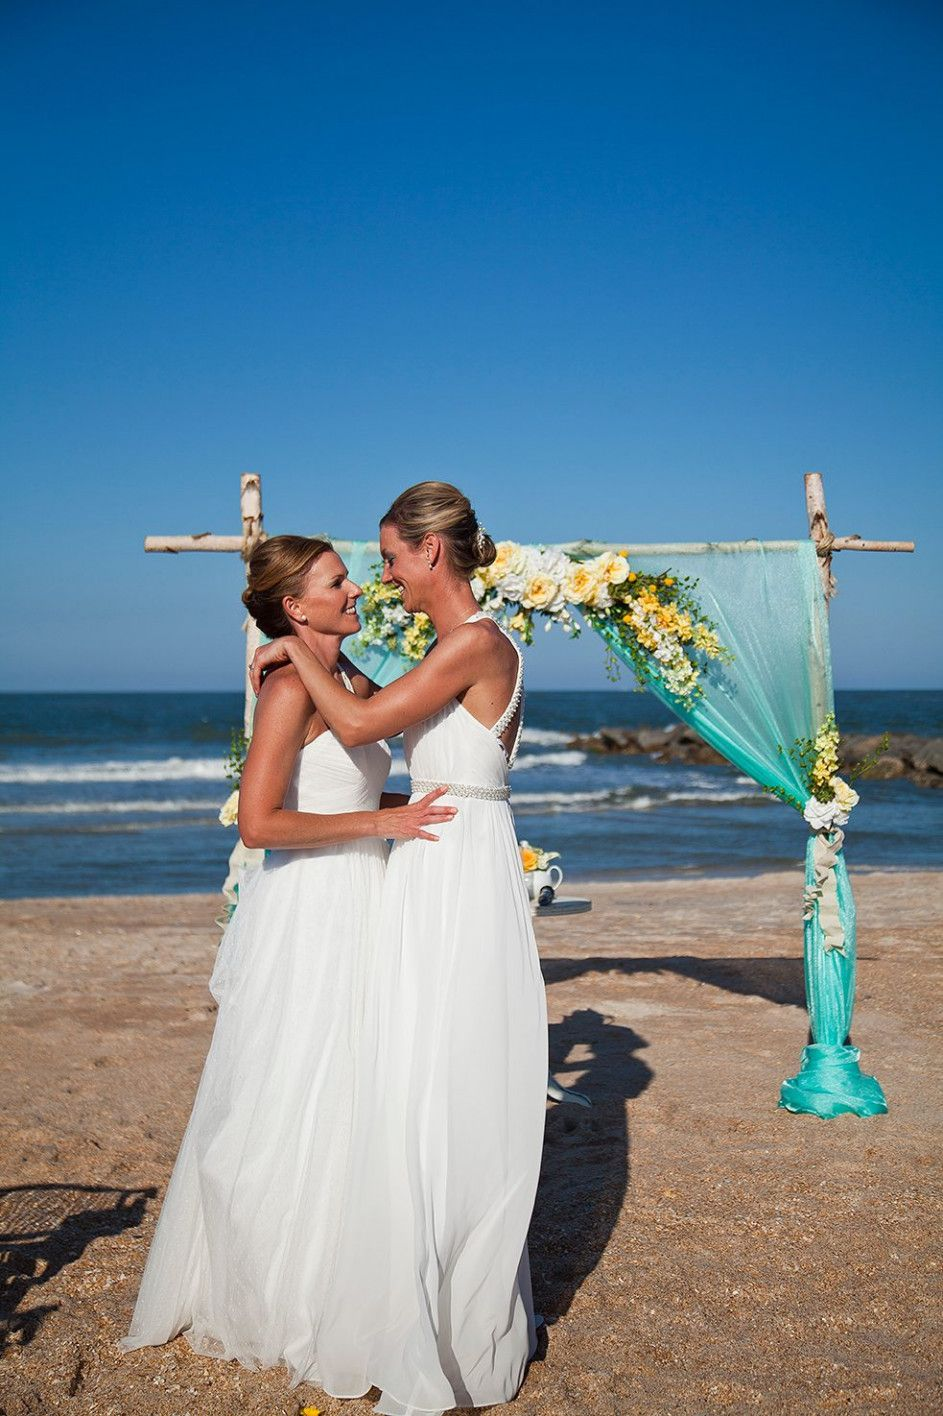 Seven Benefits Of Cheap Florida Beach Weddings That May Change Your Perspective